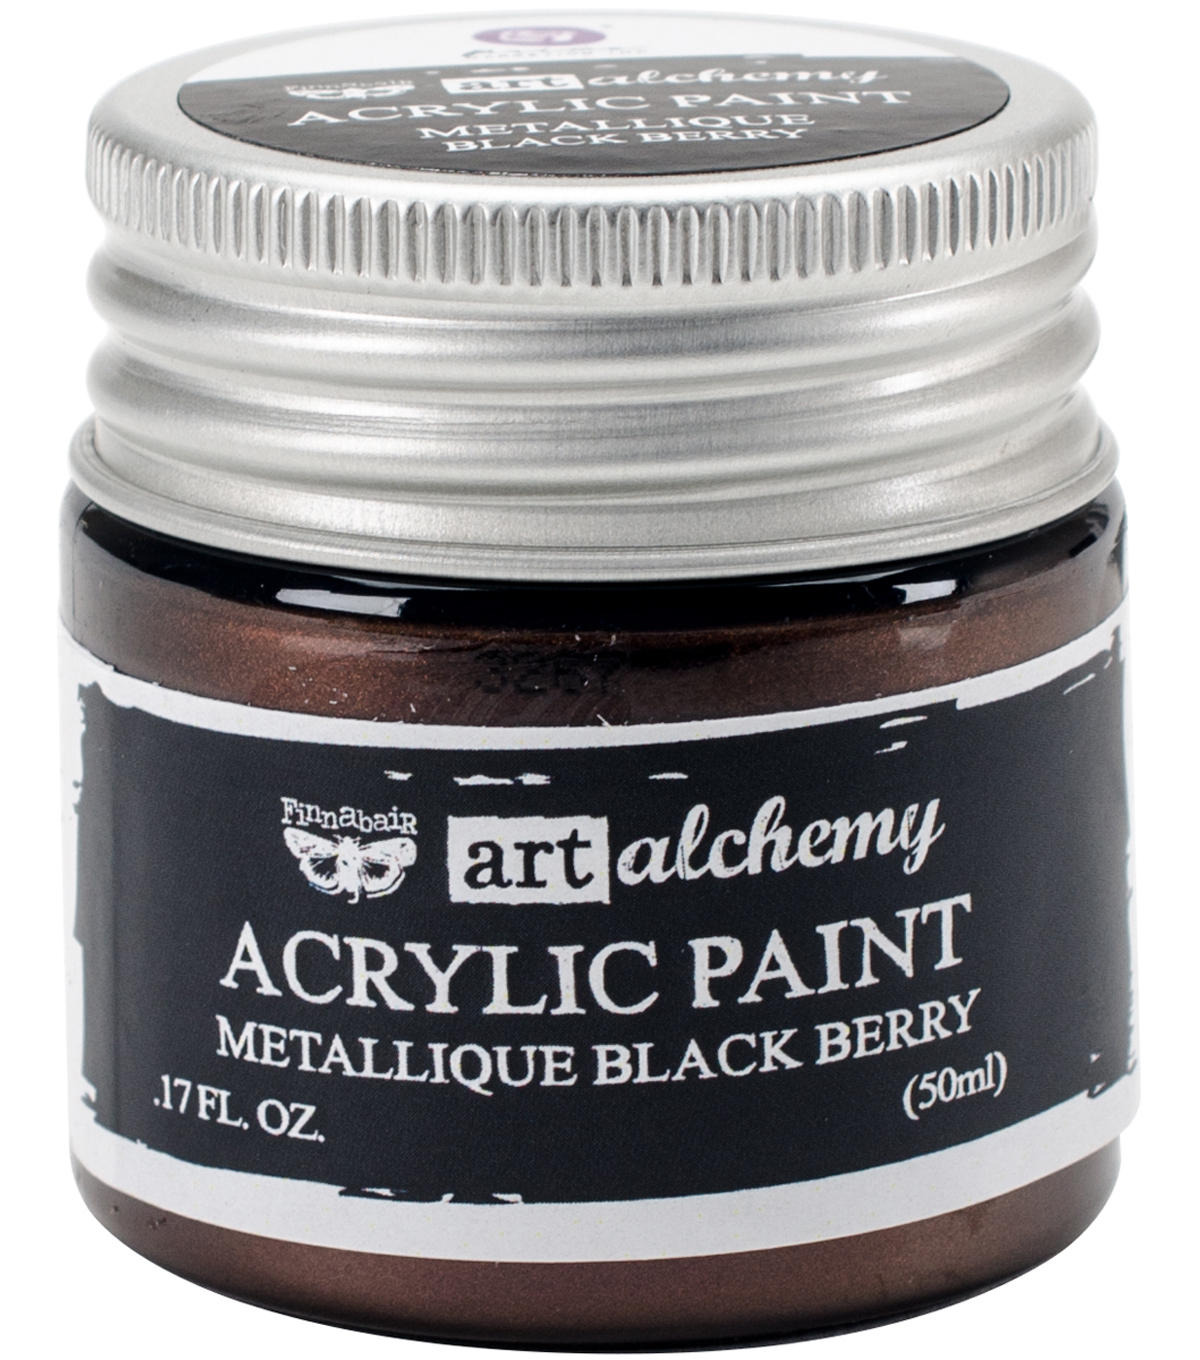 Prima Marketing Art Alchemy 1.7 oz. Acrylic Paint-Metallique Black Berry